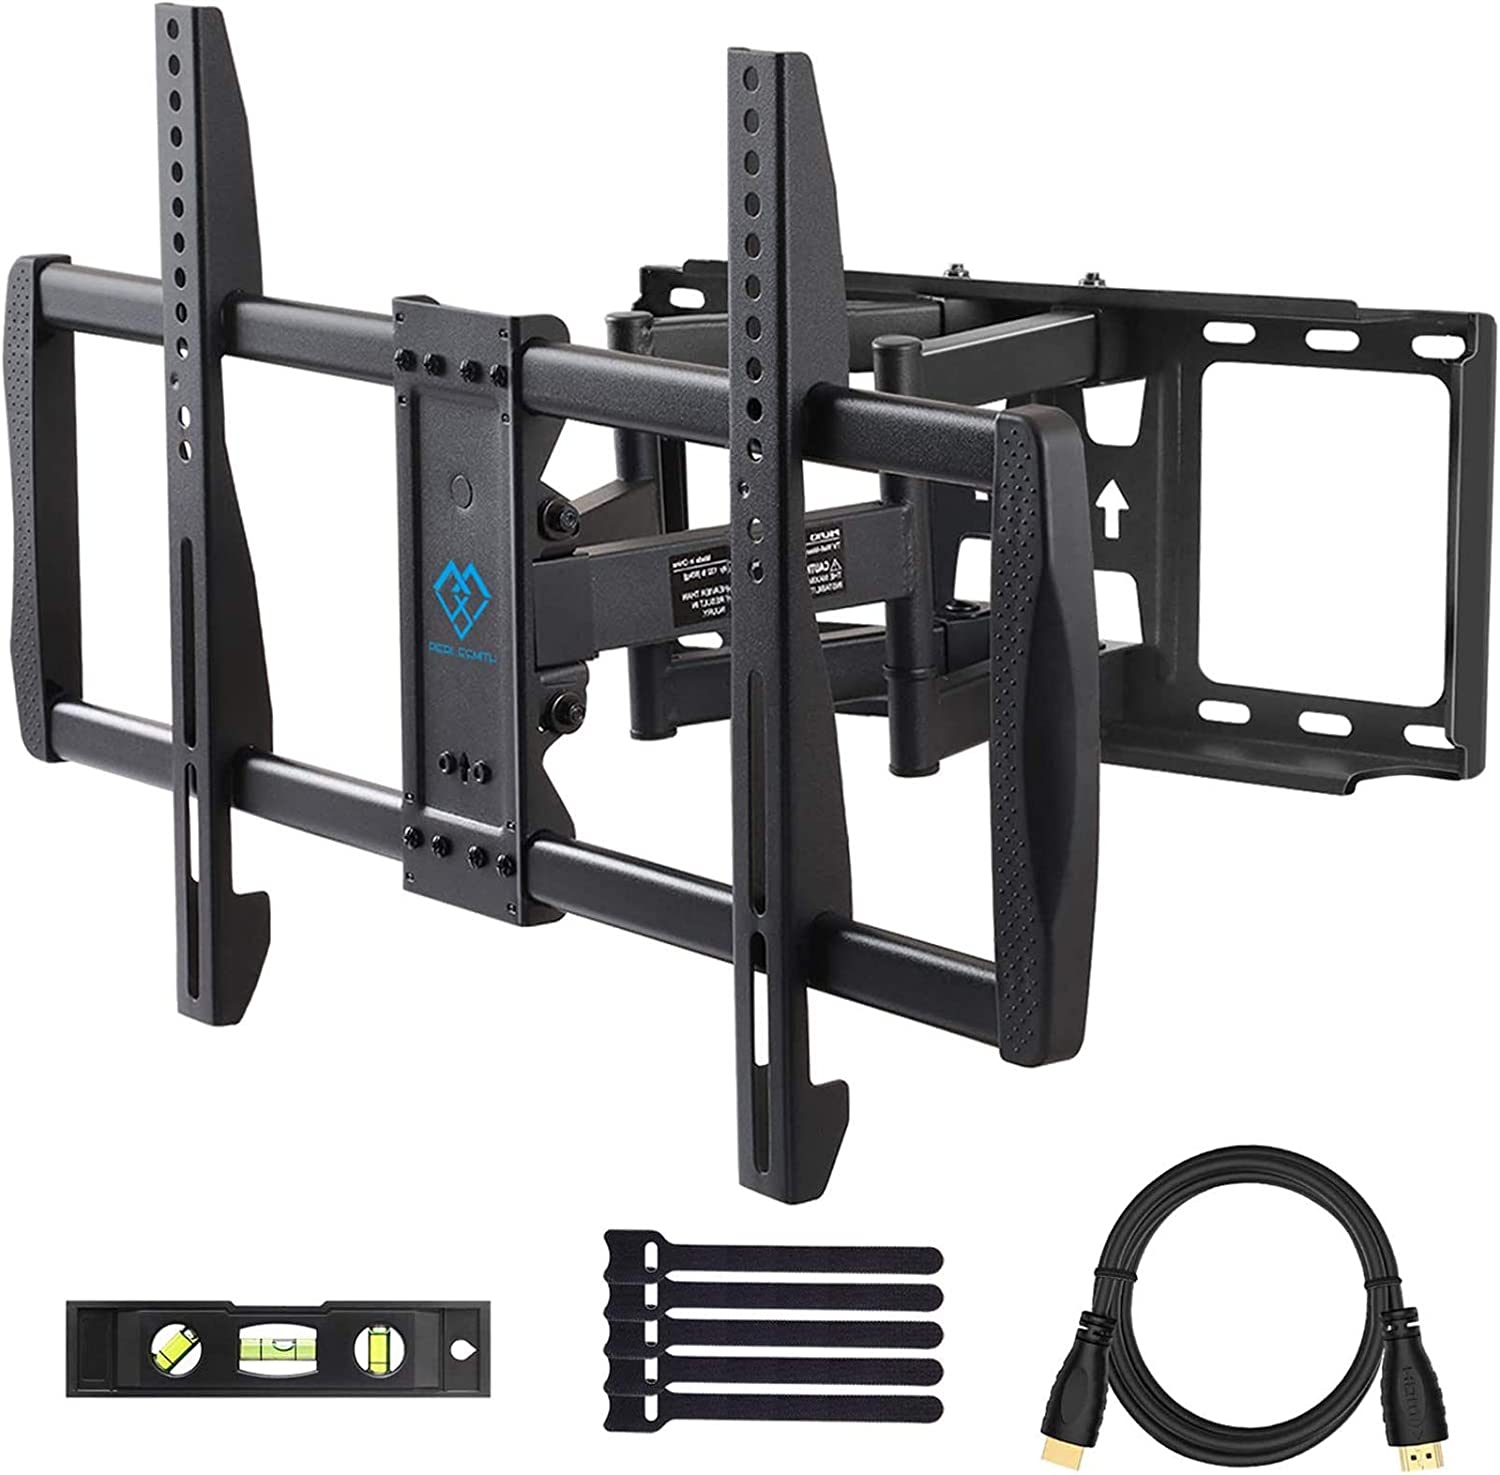 Dual Articulating Arms Wall Mount TV Bracket Supports TVs up to ...